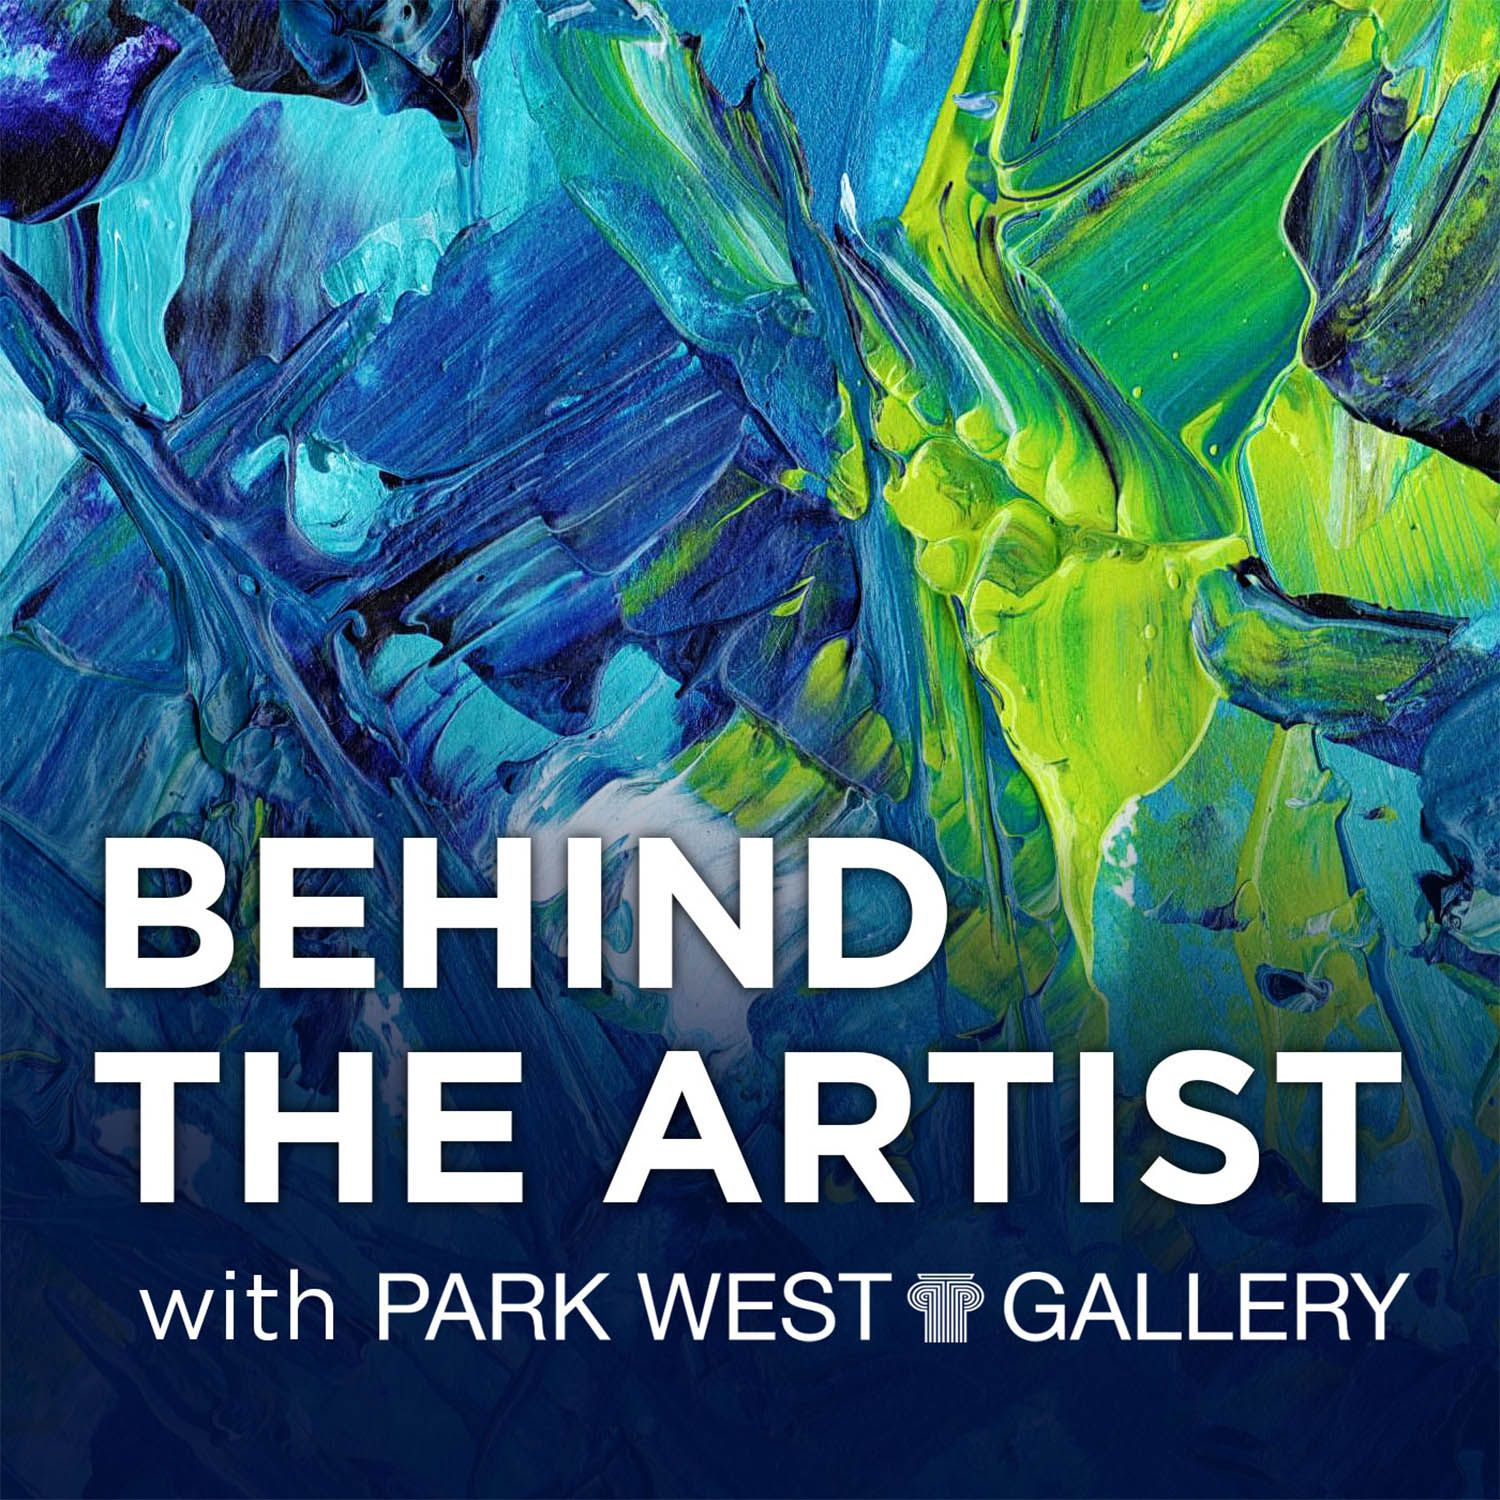 Behind the Artist with Park West Gallery